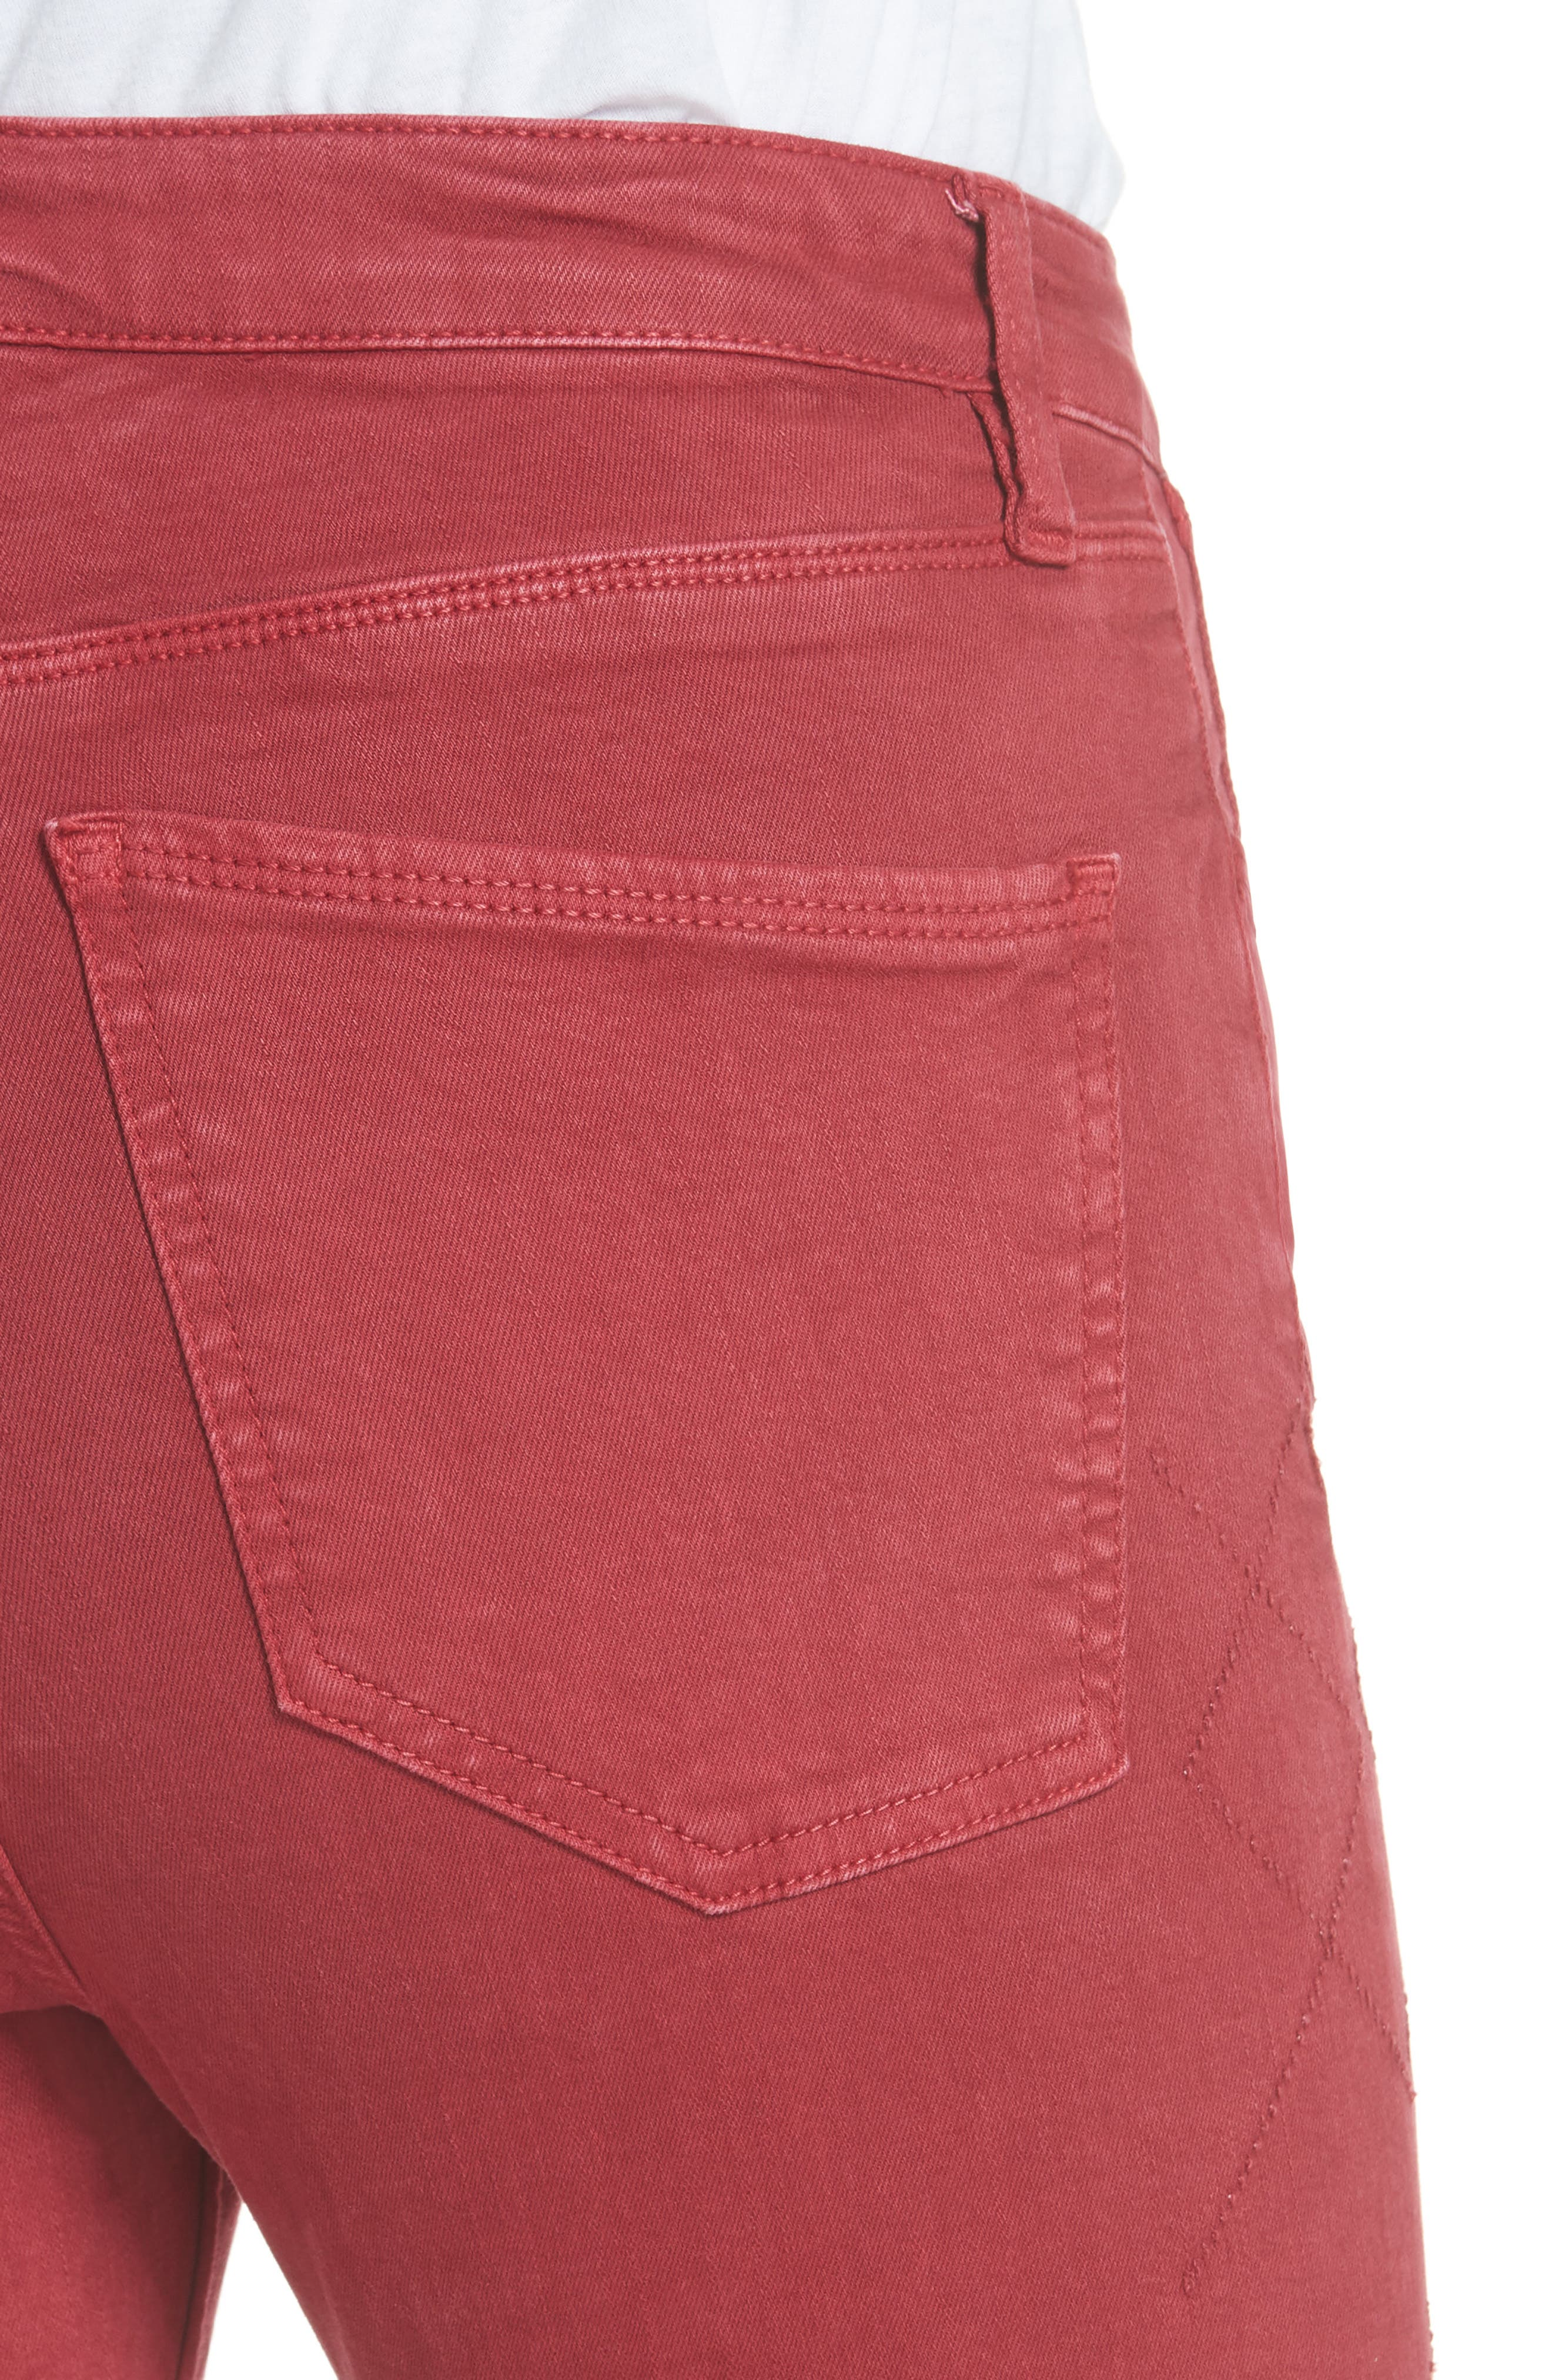 Rolling Old Reina Lattice Stitch Skinny Jeans,                             Alternate thumbnail 4, color,                             Framboise